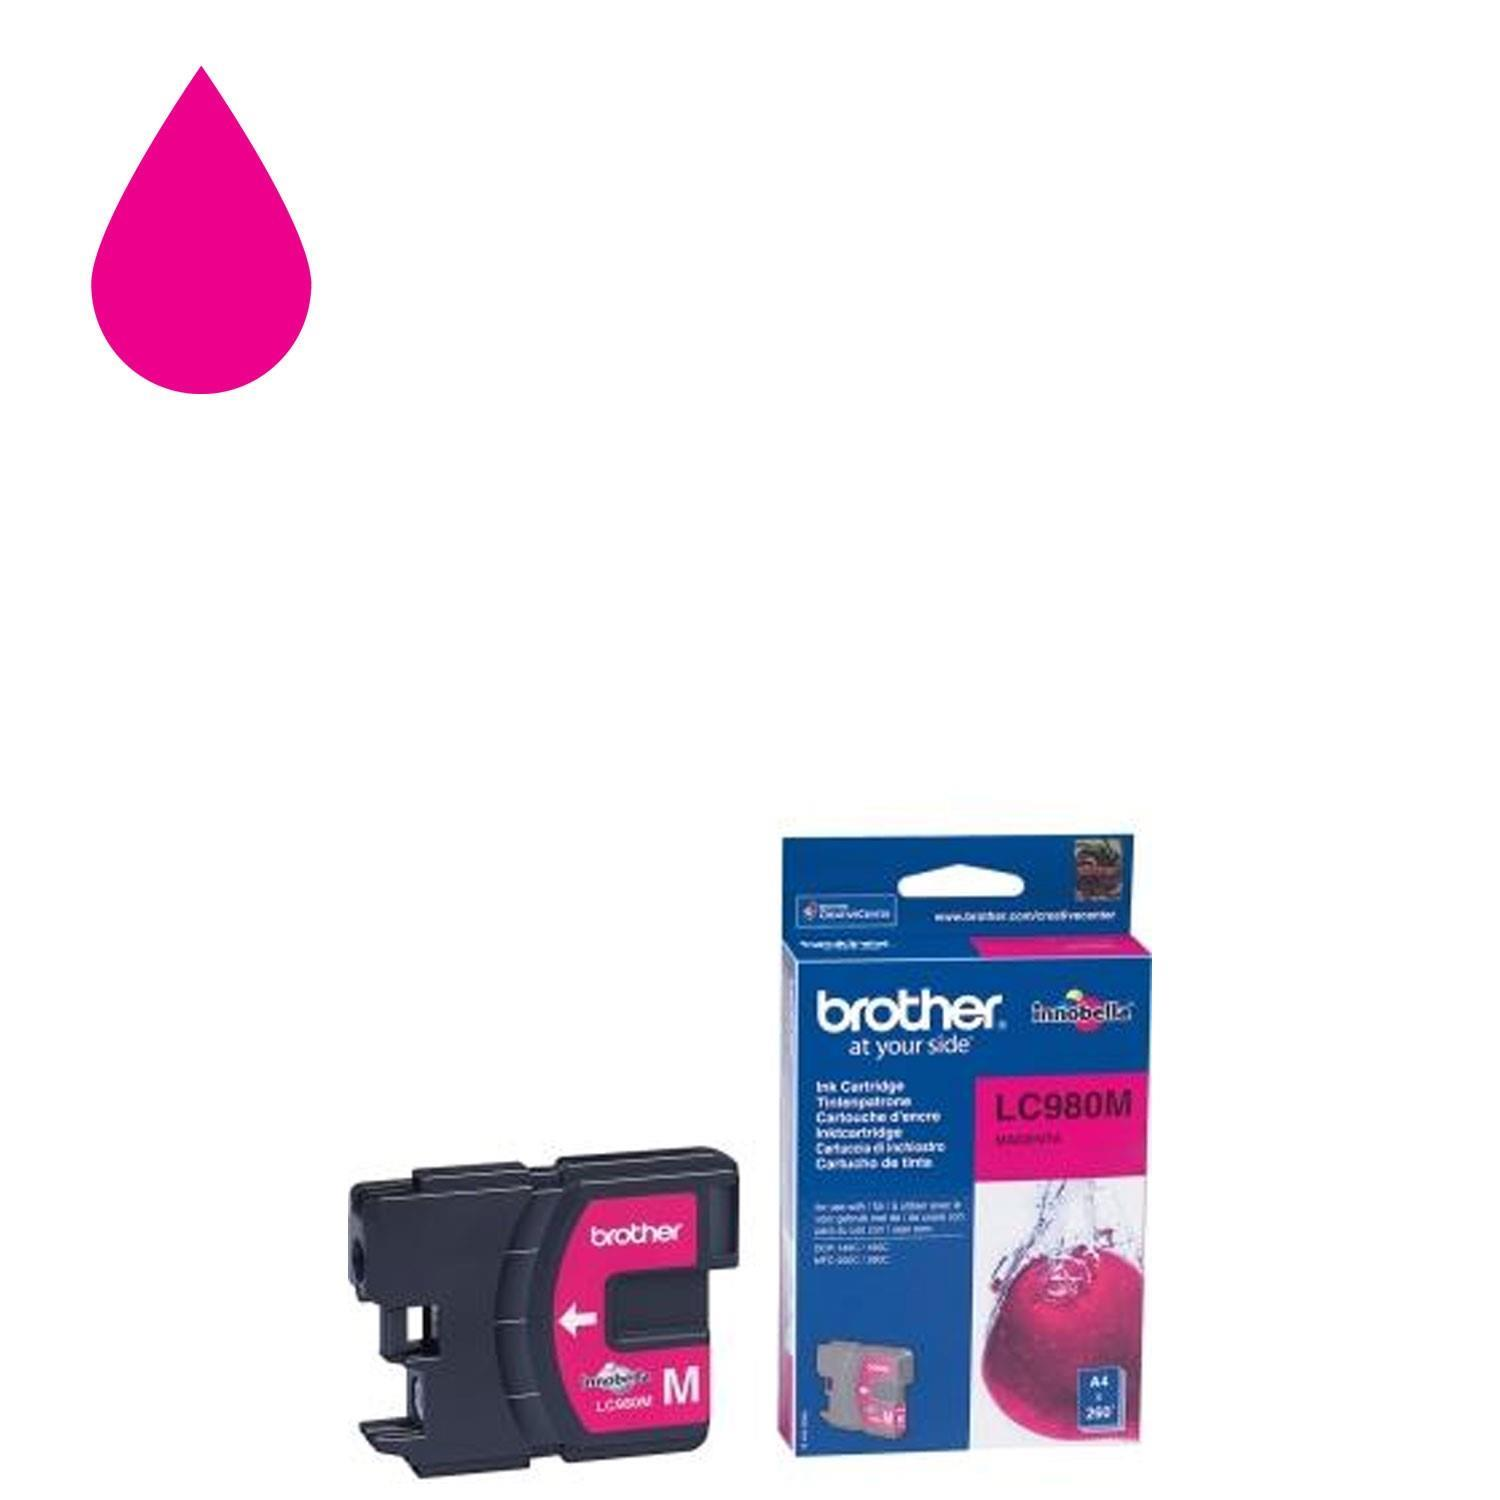 Brother LC-980M Ink Cartridge - Magenta